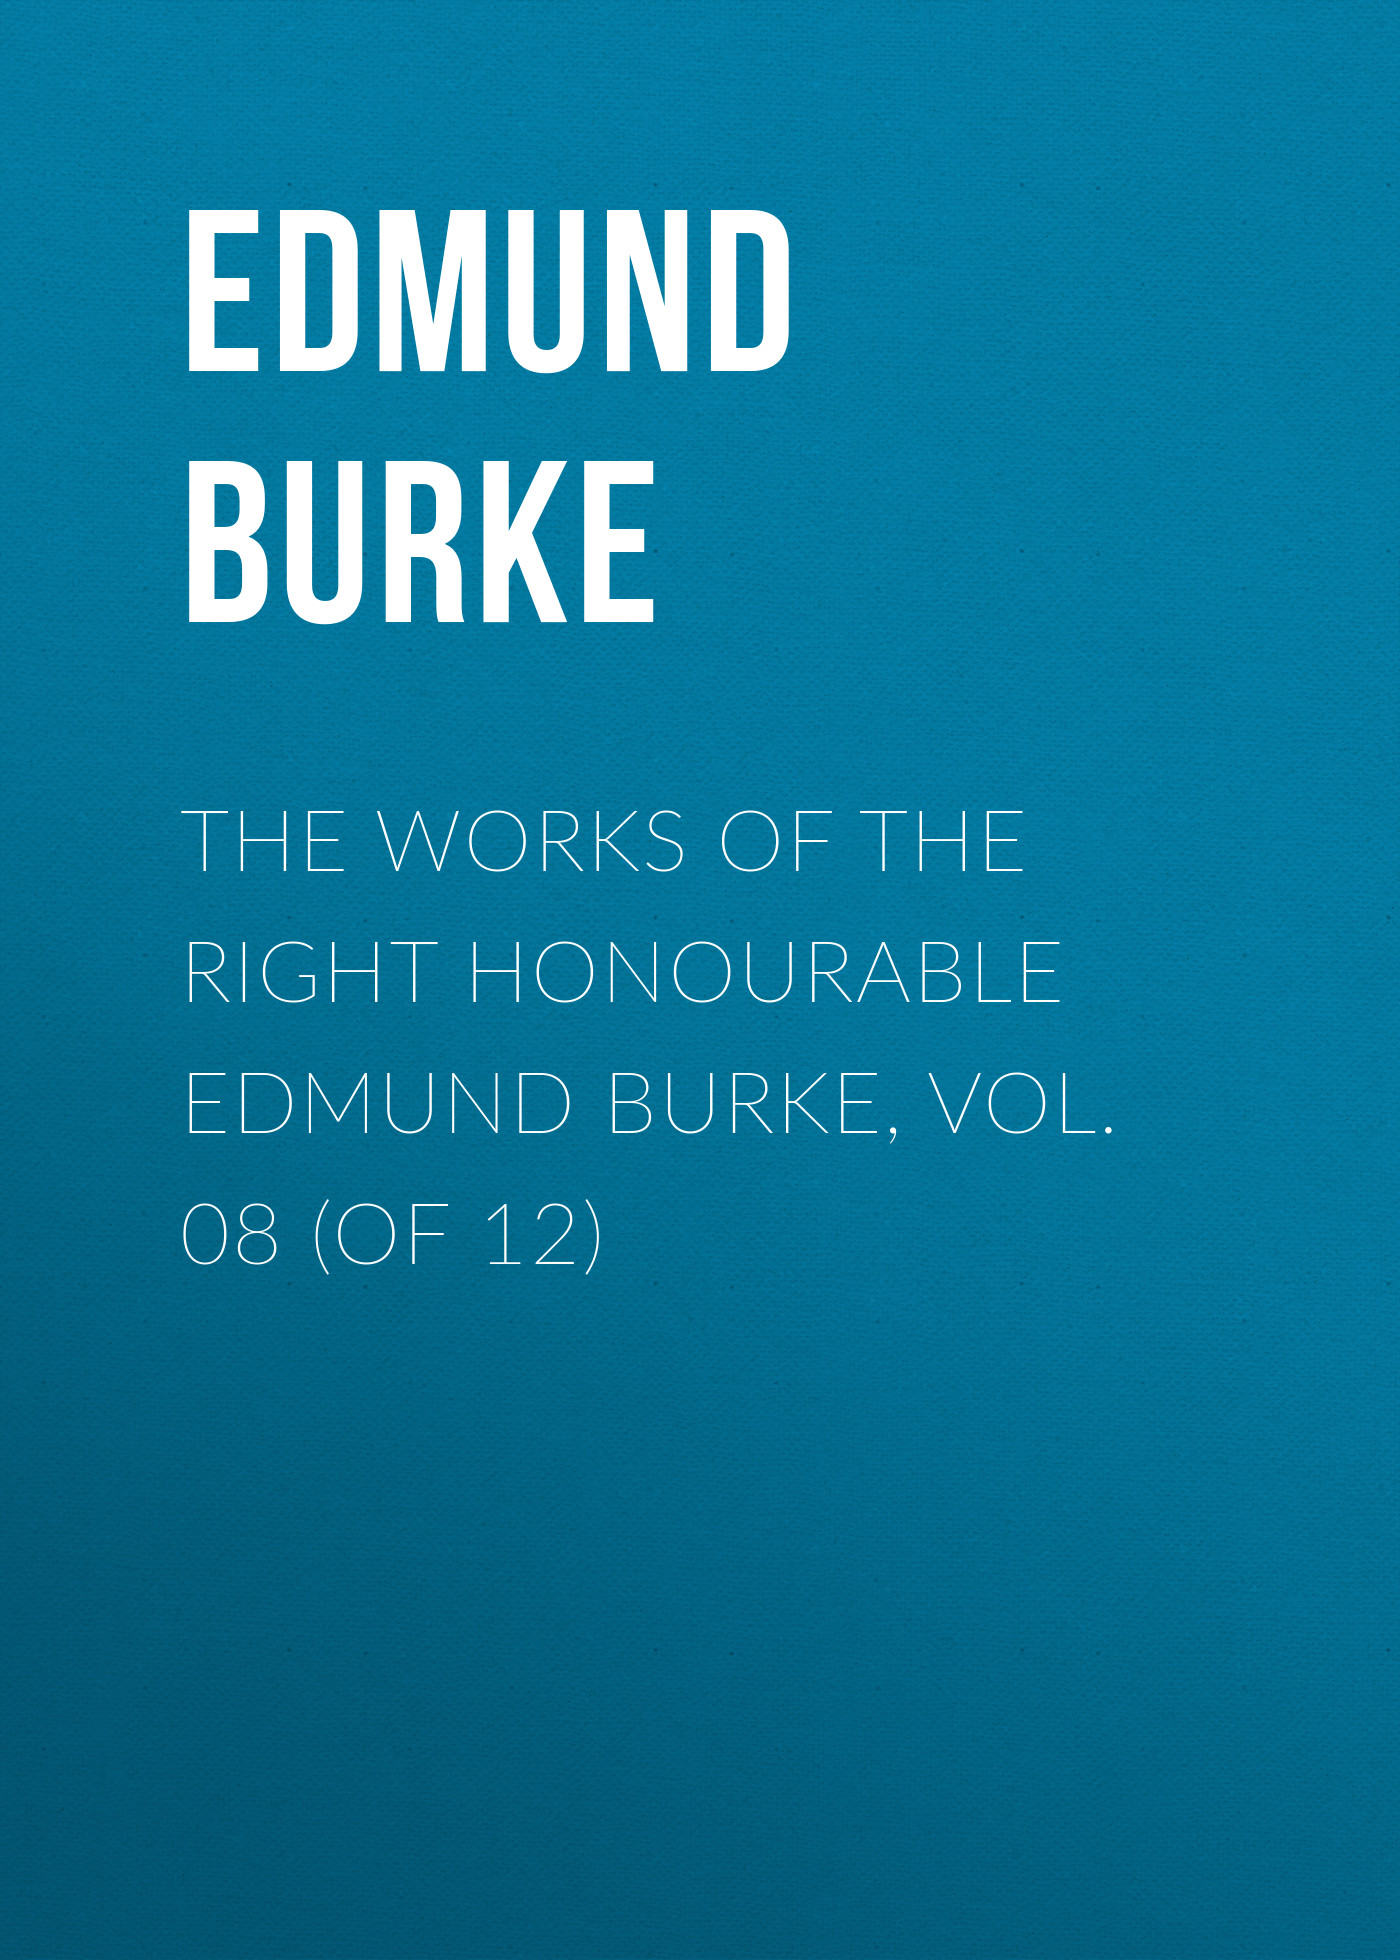 Edmund Burke The Works of the Right Honourable Edmund Burke, Vol. 08 (of 12) mark akenside the poetical works vol 1